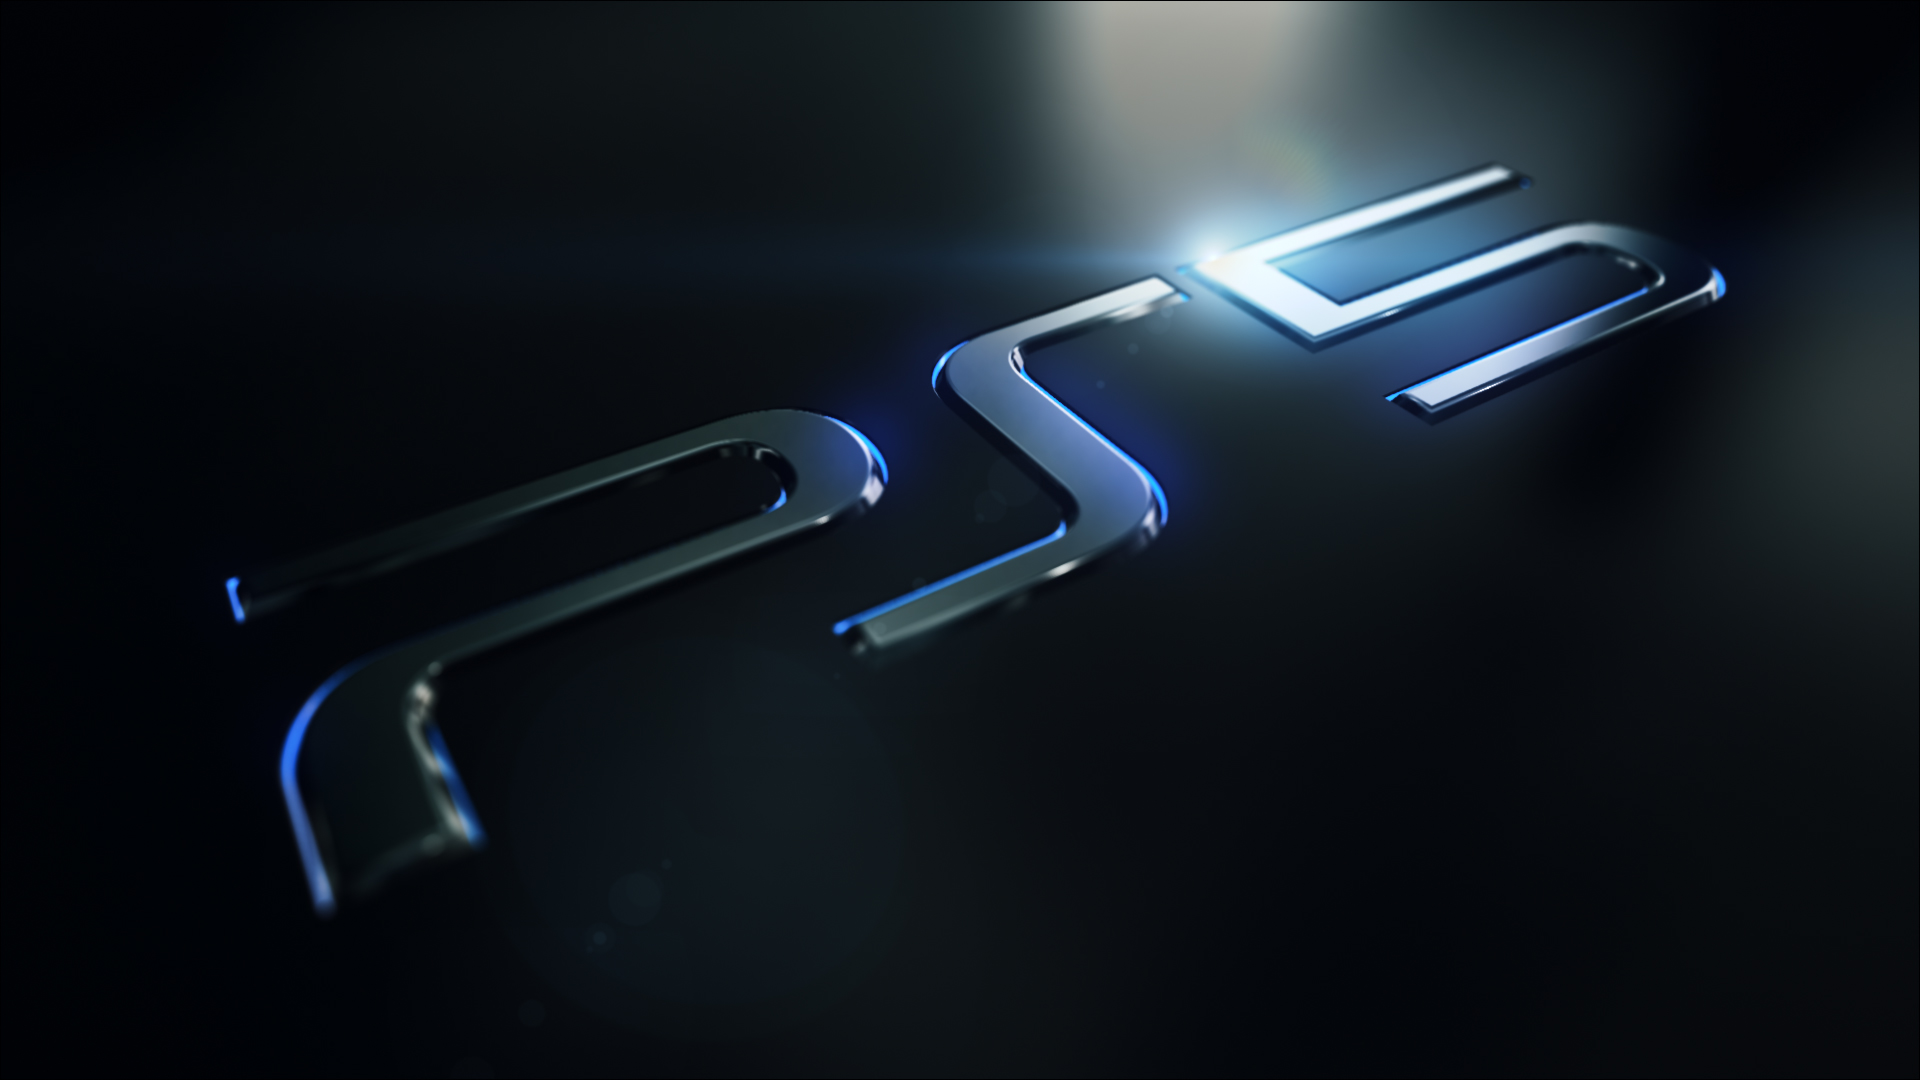 PS5: Price, Release Date, Specs, and Features for Sony's VR-Ready